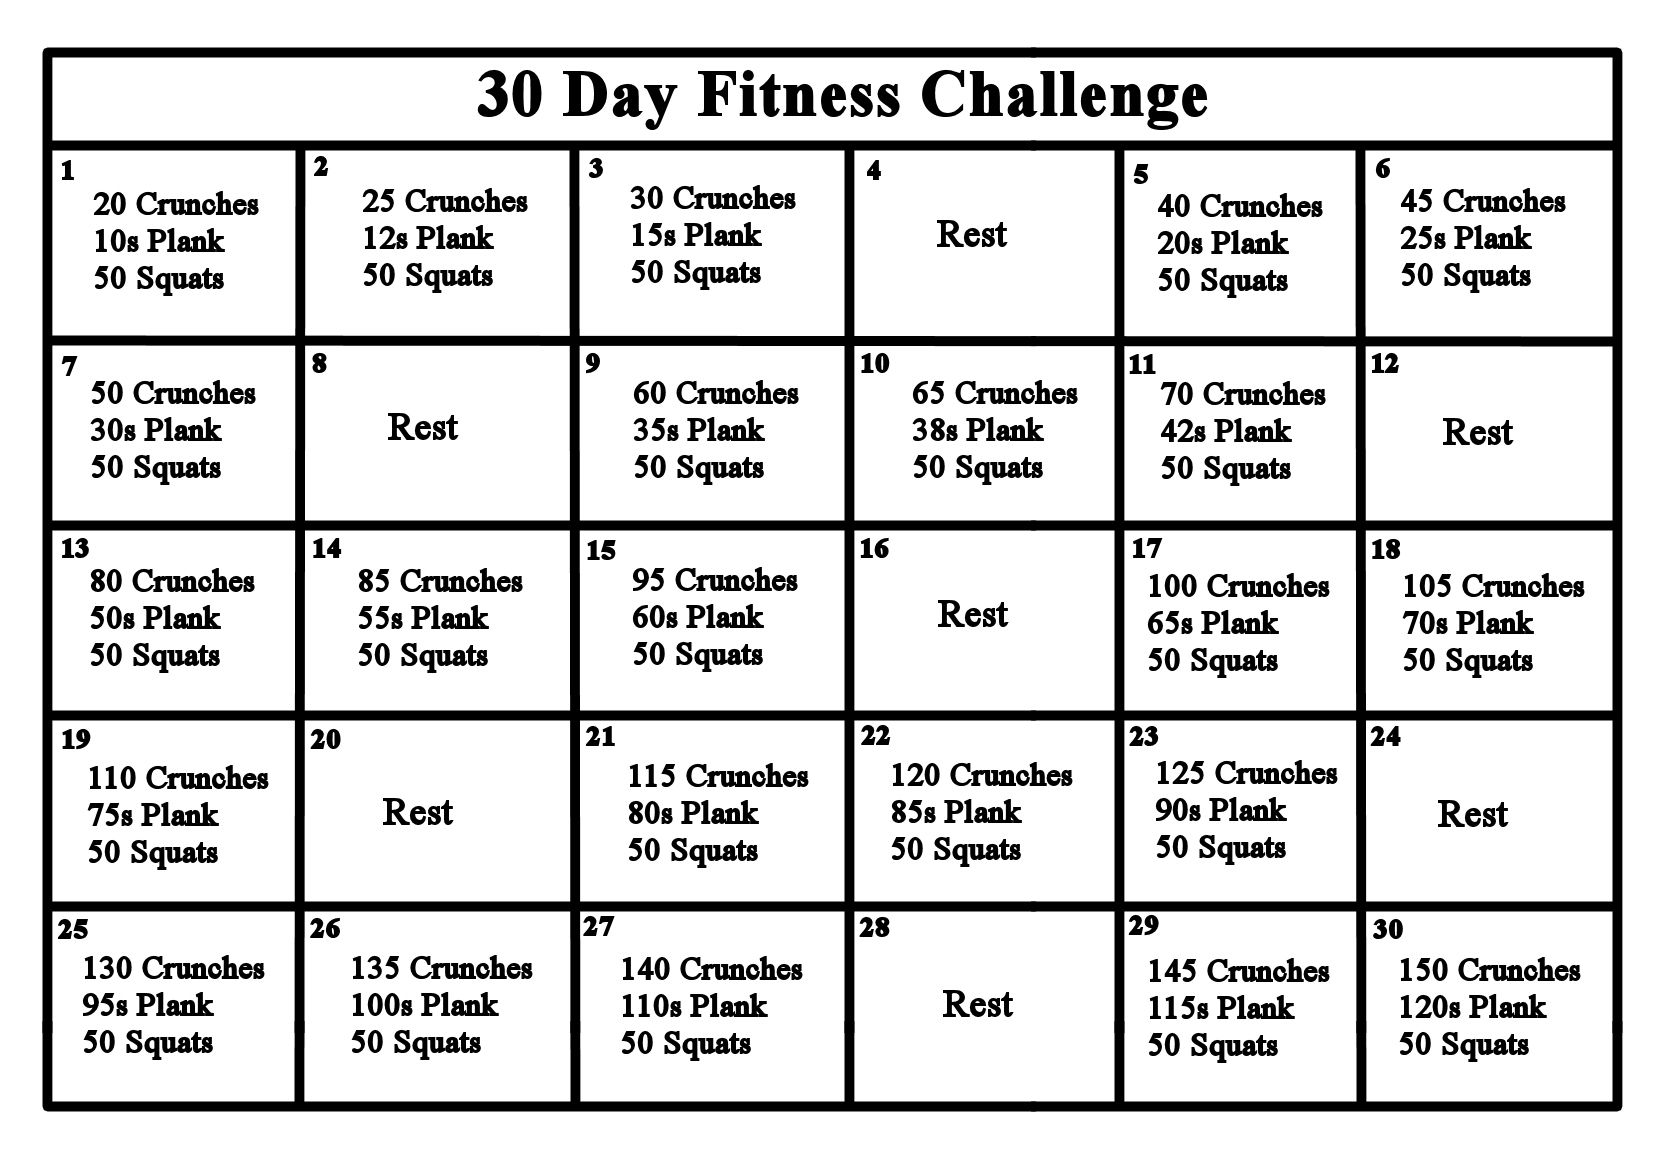 30 Day Fitness Challenge Abs Crunches Squats Planks 30 Day Workout Challenge 30 Day Fitness Workout Challenge